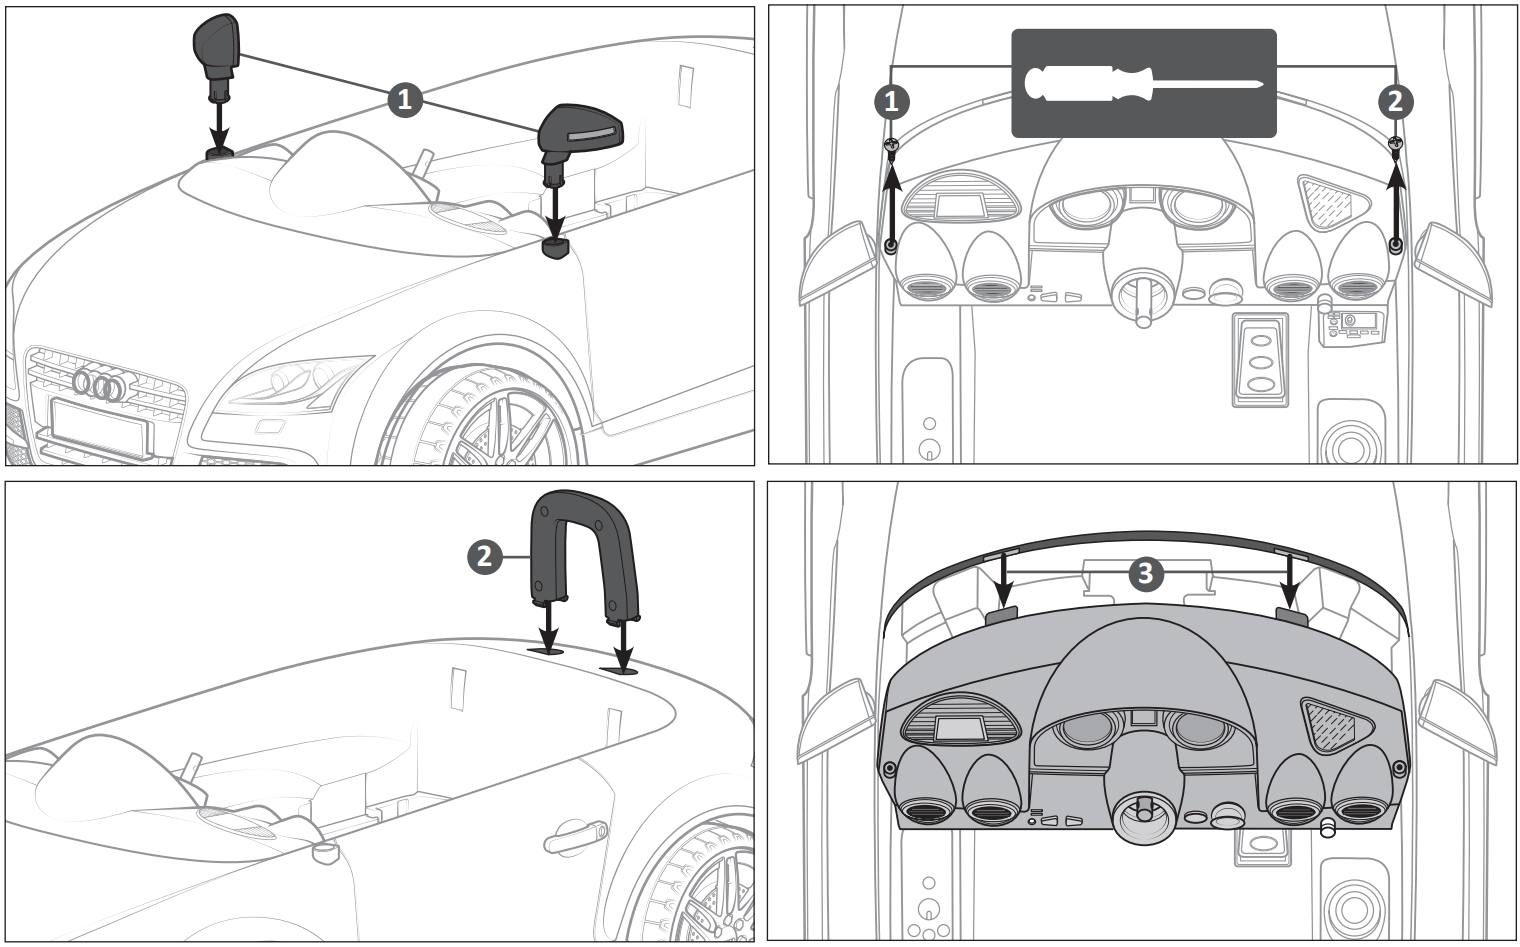 audi tt ride on car wing mirror, back headrest assembly illustration